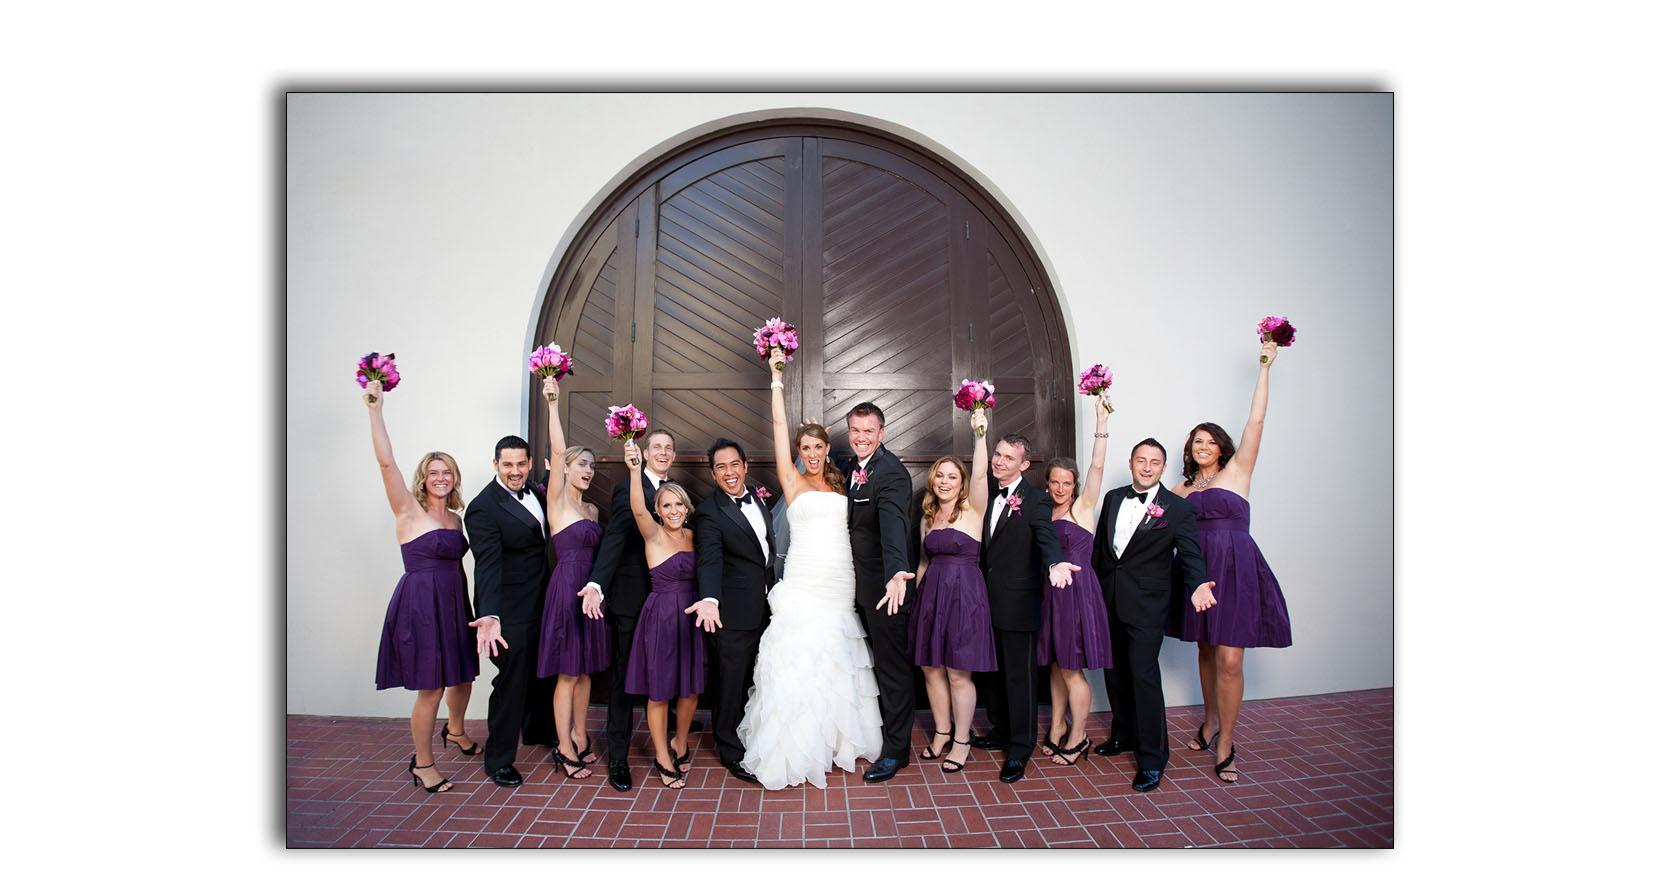 San Diego Hard Rock wedding photo album 05